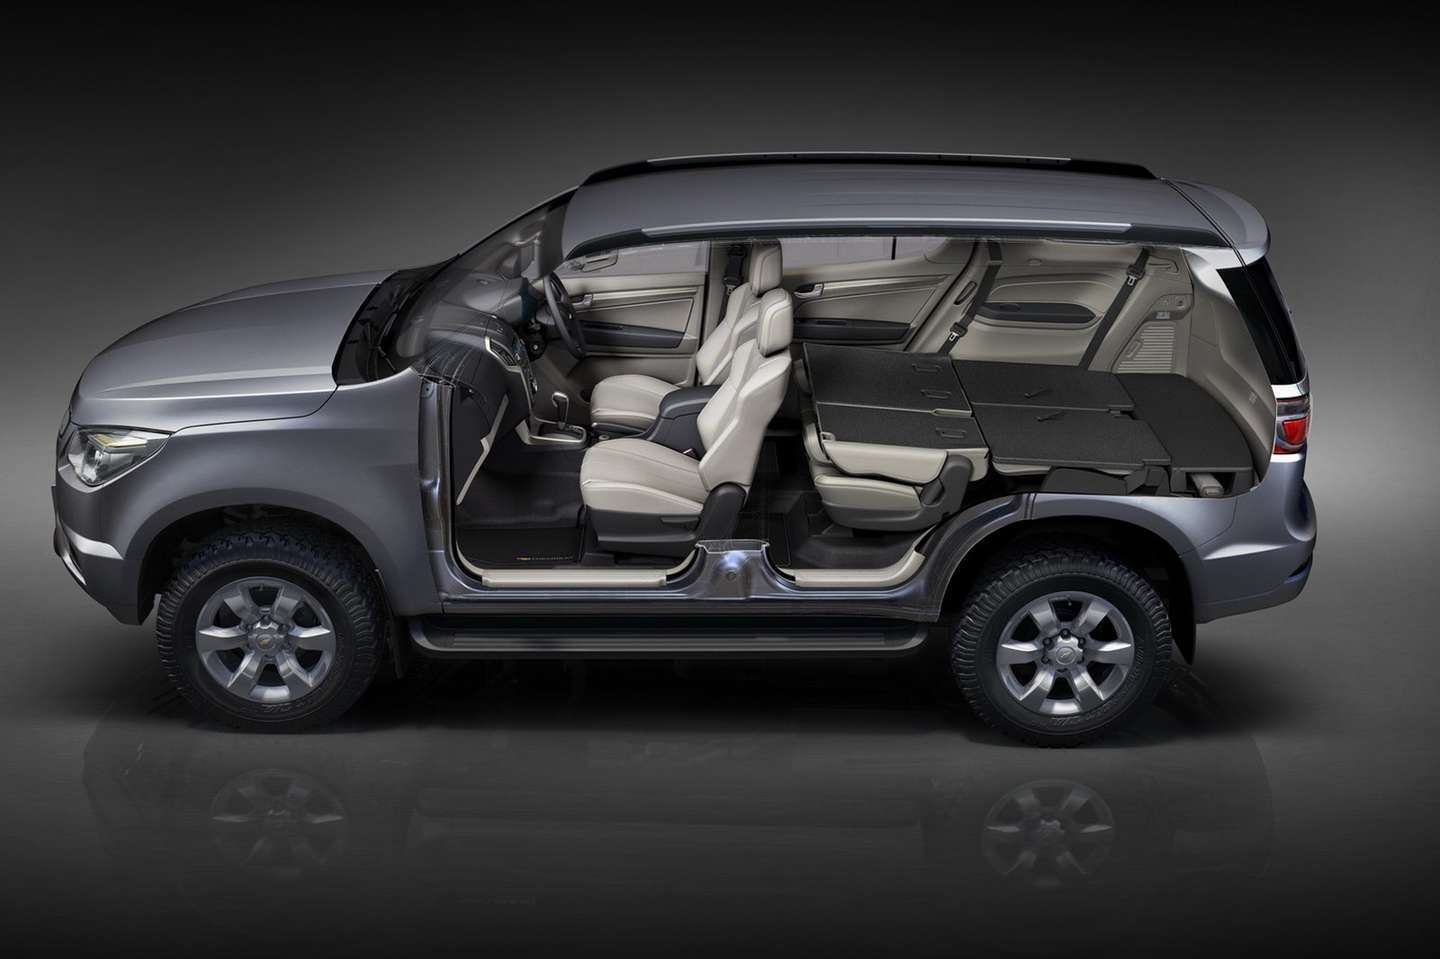 Chevrolet TrailBlazer #7809935